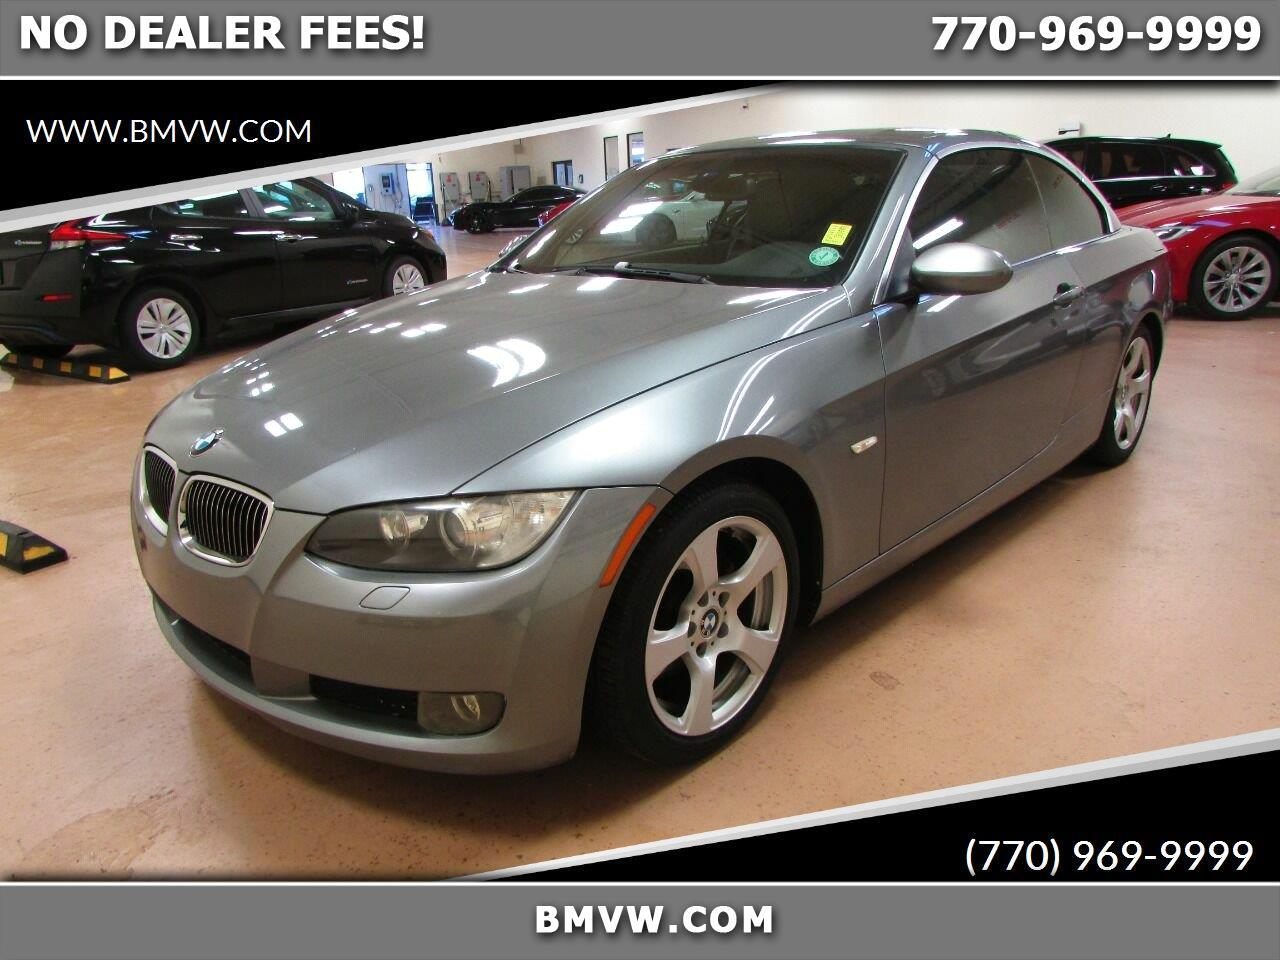 BMW 3 Series 2dr Conv 328i 2007